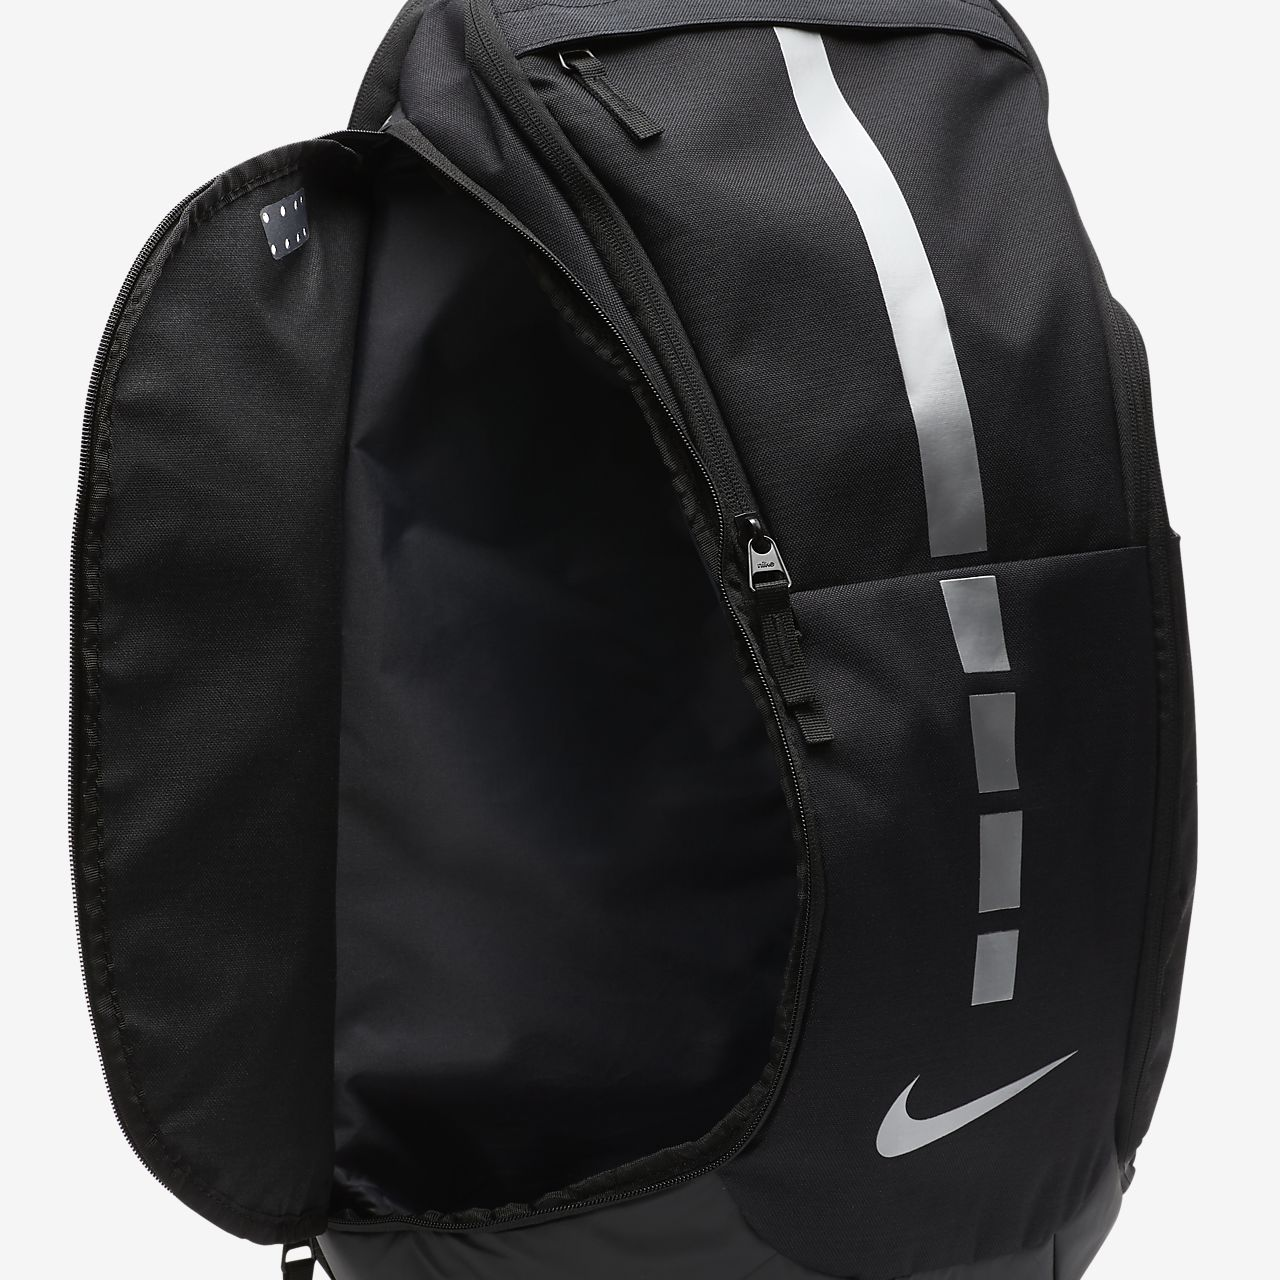 611d1320f0 Nike Hoops Elite Pro Basketball Backpack. Nike.com AU